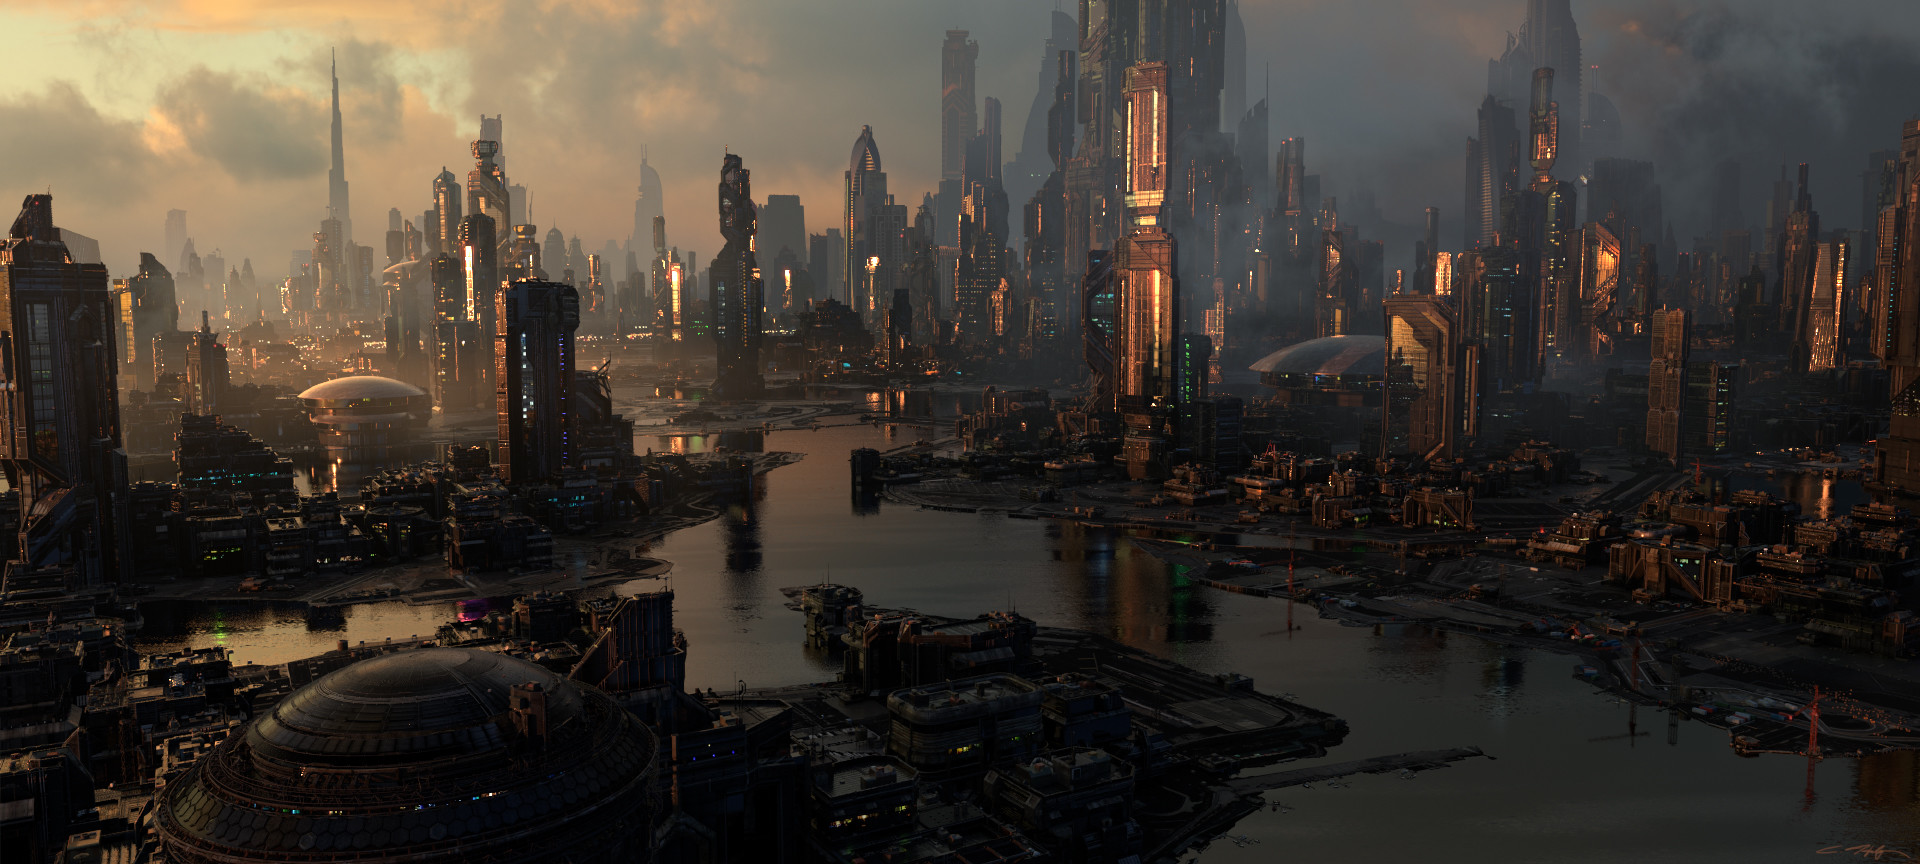 art futuristic cities - photo #47